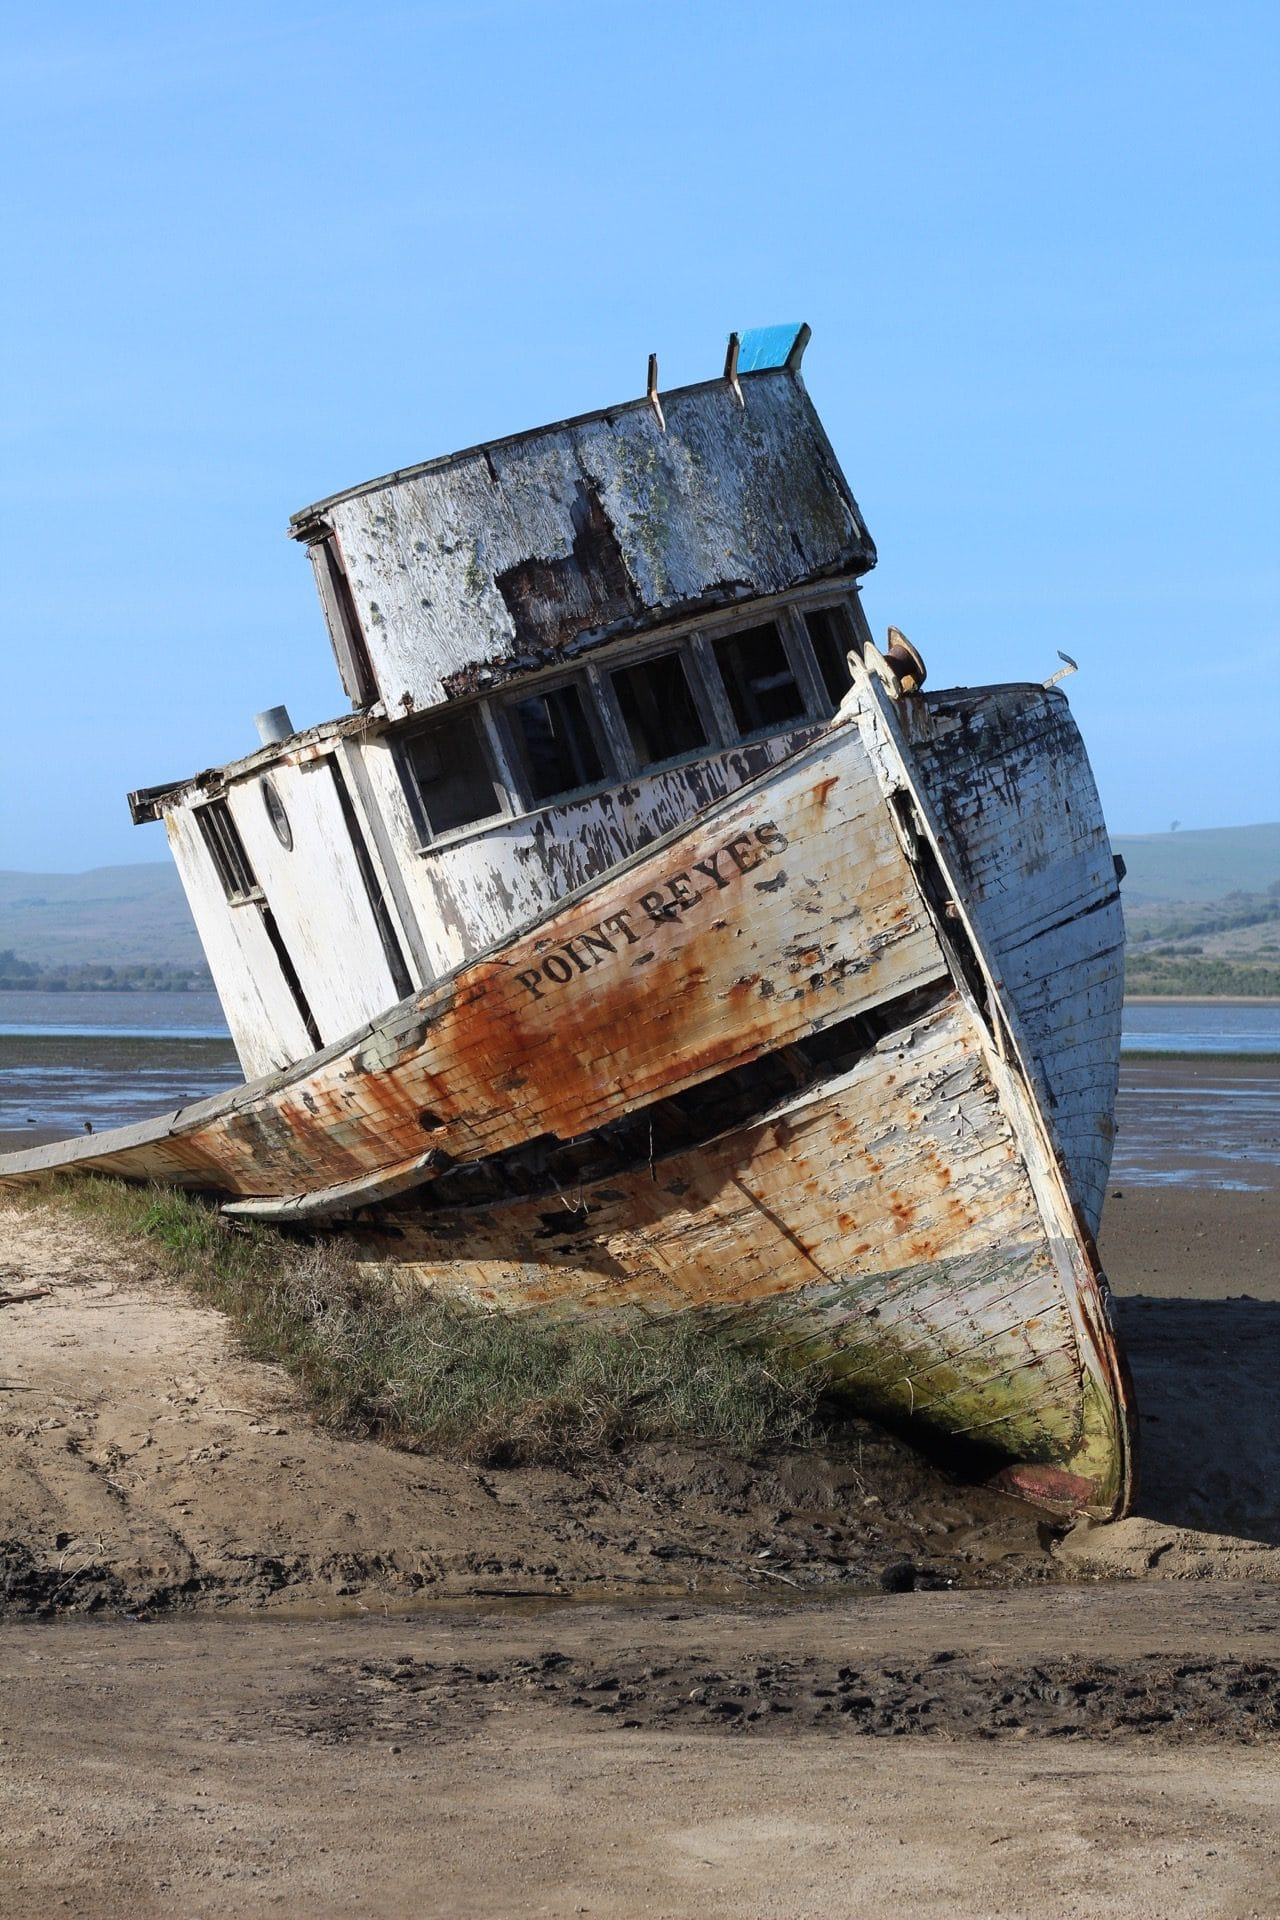 Point Reyes Shipwreck behind Inverness Store in Marin County, California. Click here to read how to visit Muir Woods & Point Reyes in ONE Day trip from San Francisco! #shipwreck #inverness #pointreyes #muirwoods